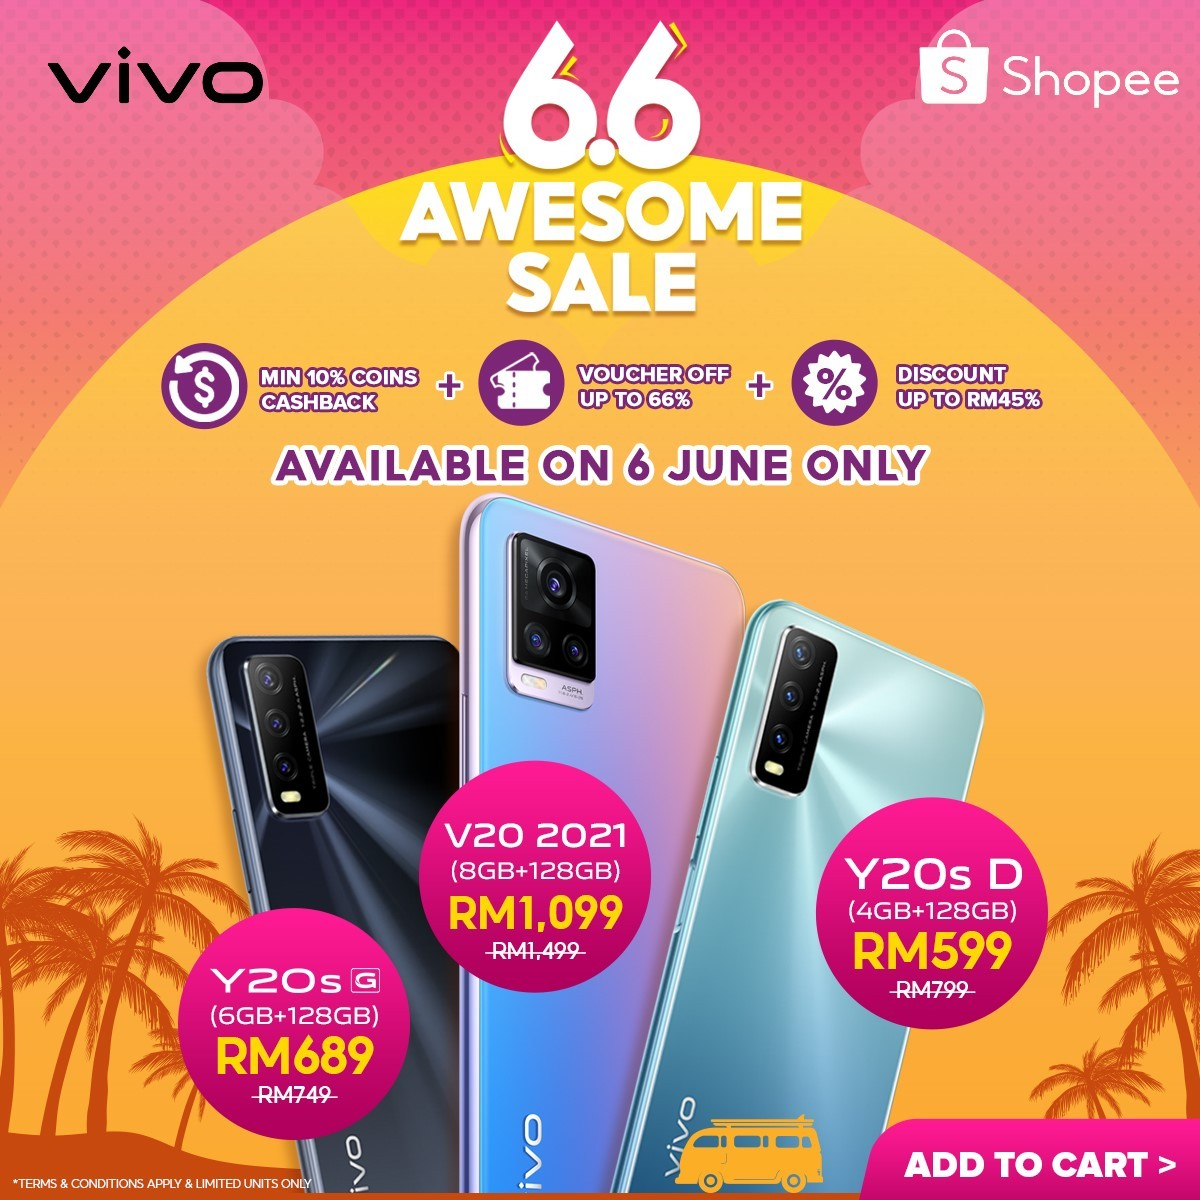 vivo x Shopee 6.6 Awesome Sale Offers Limited Time Great Deals on 6 June